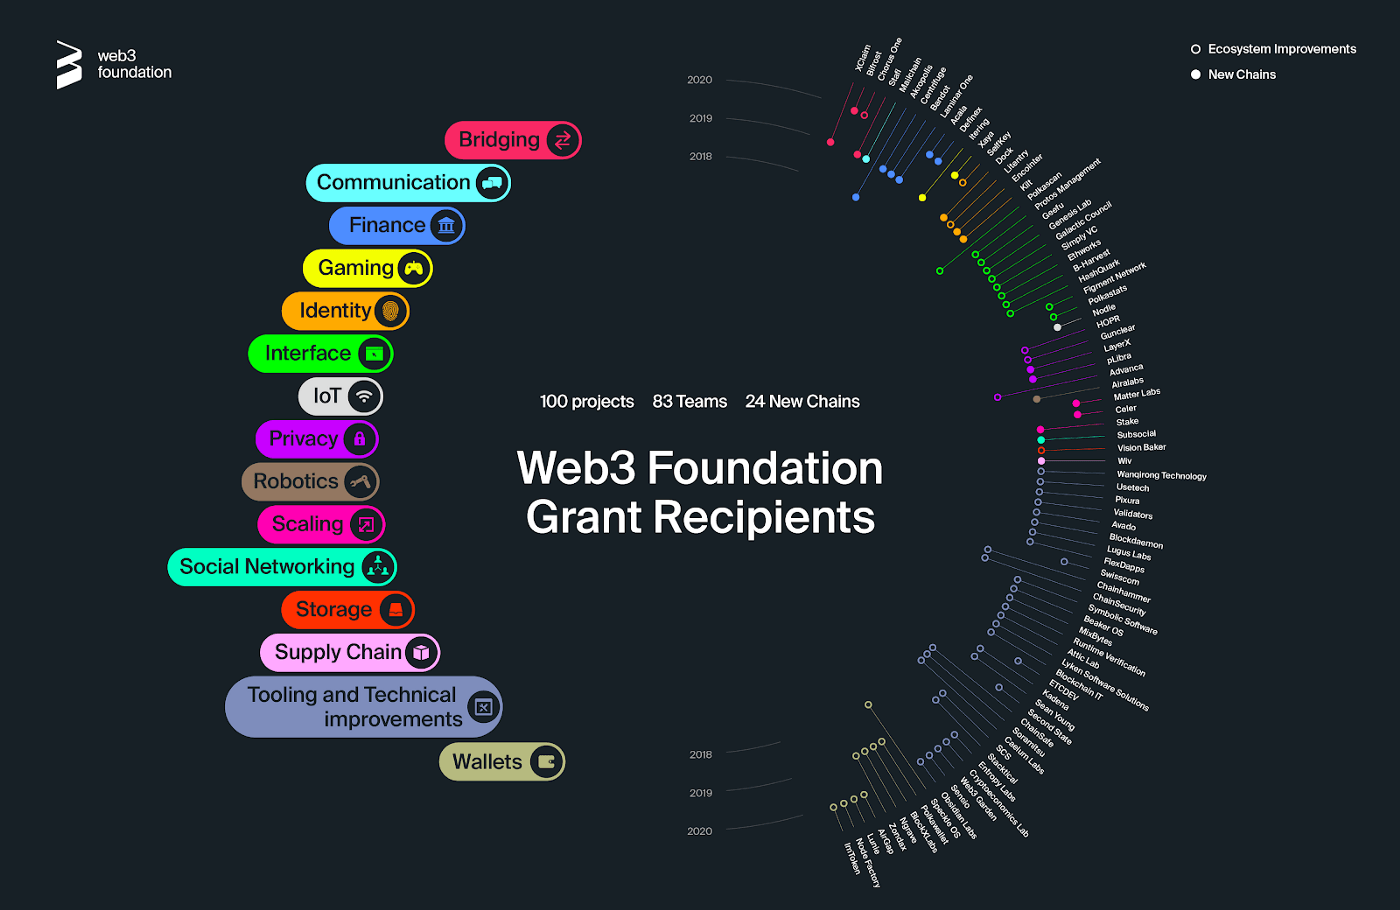 The recipients of the Web3 Foundation's grants scheme.